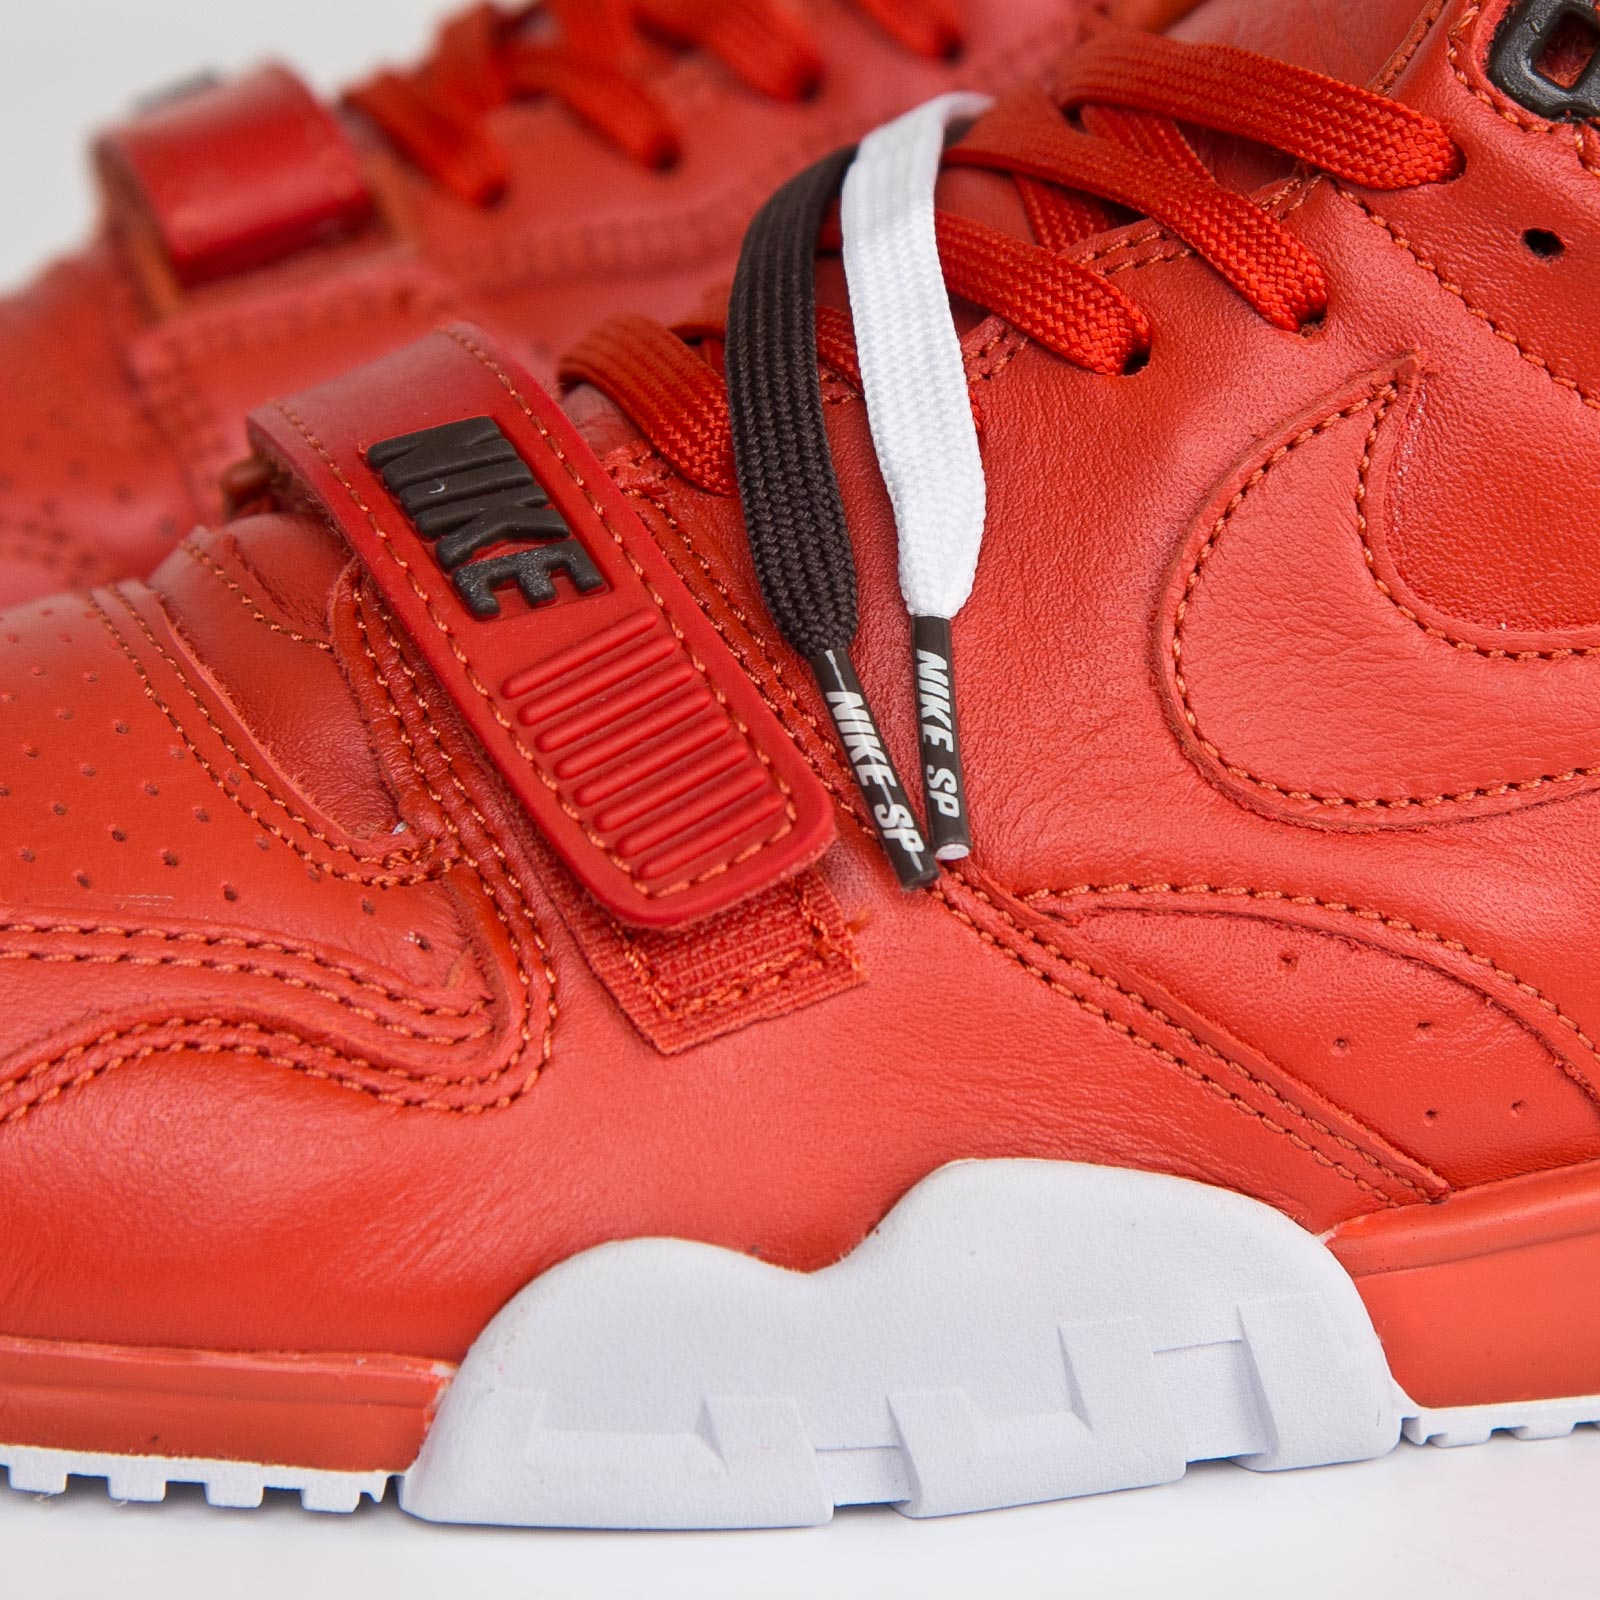 6dc4e0c1174f Nike Air Trainer 1 Mid SP   Fragment - 806942-881 - Sneakersnstuff ...